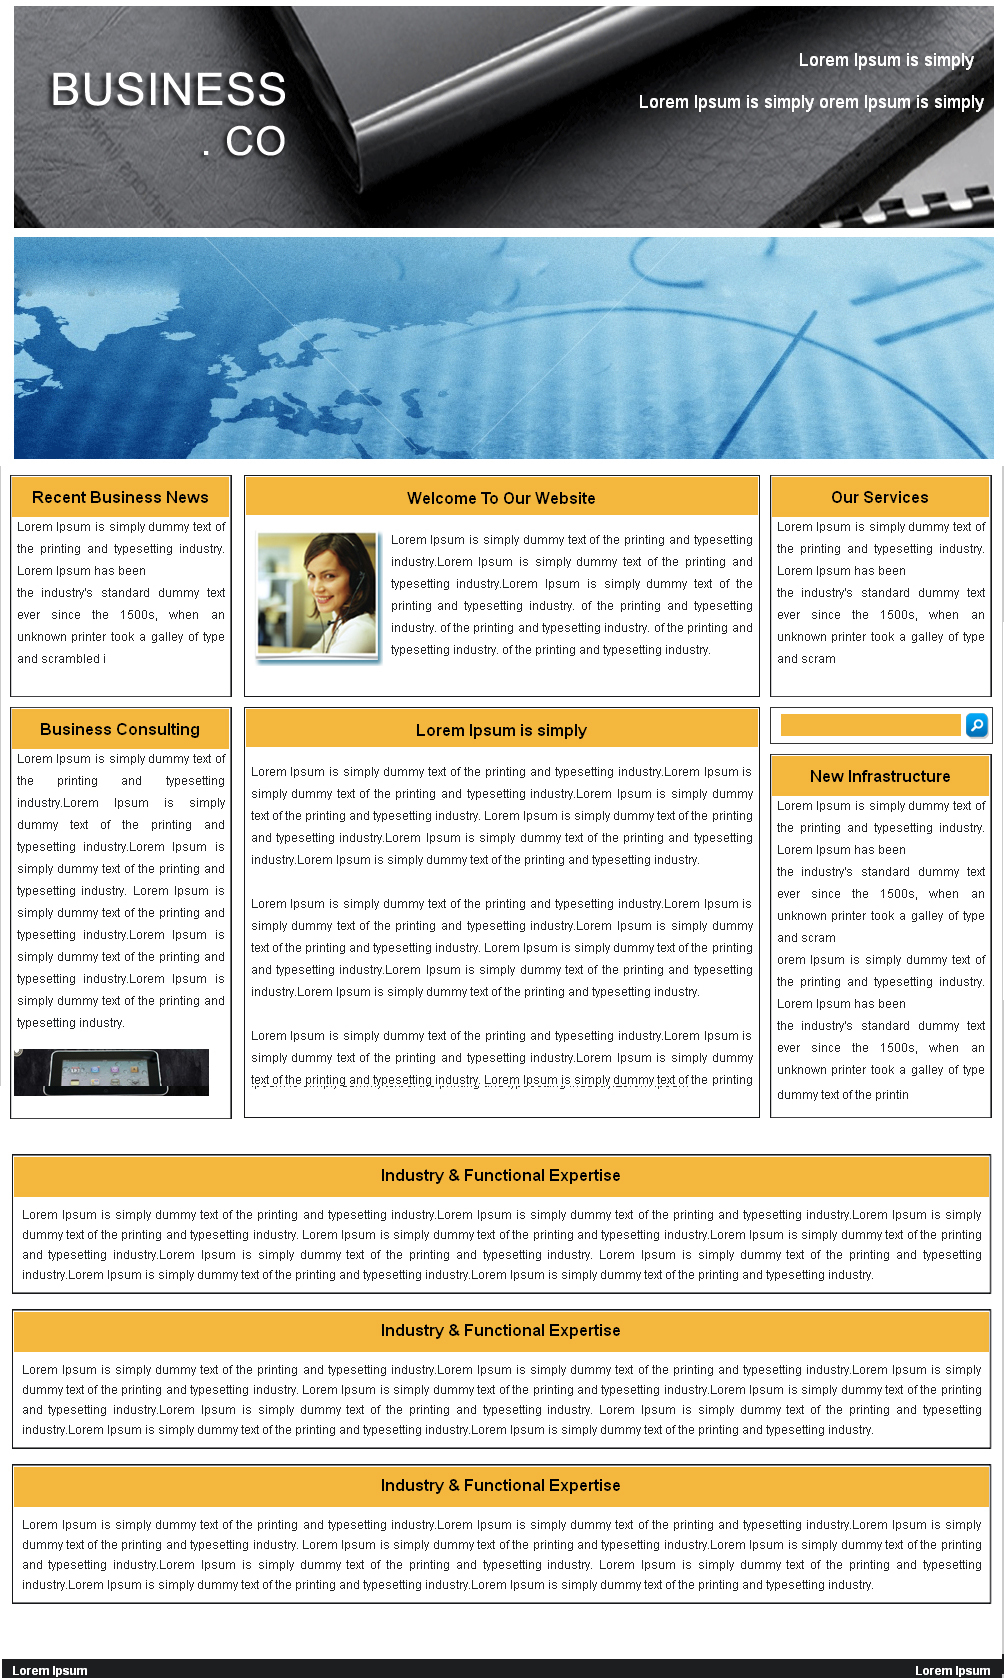 WordPress theme Theme1xColorBAuthor: AAATestersAuthor URI: http://aaatesters.comVersion: 1.0License: GNU General Public License v2 or laterLicense URI: http://www.gnu.org/licenses/gpl-2.0.htmlTags: ..This theme, like